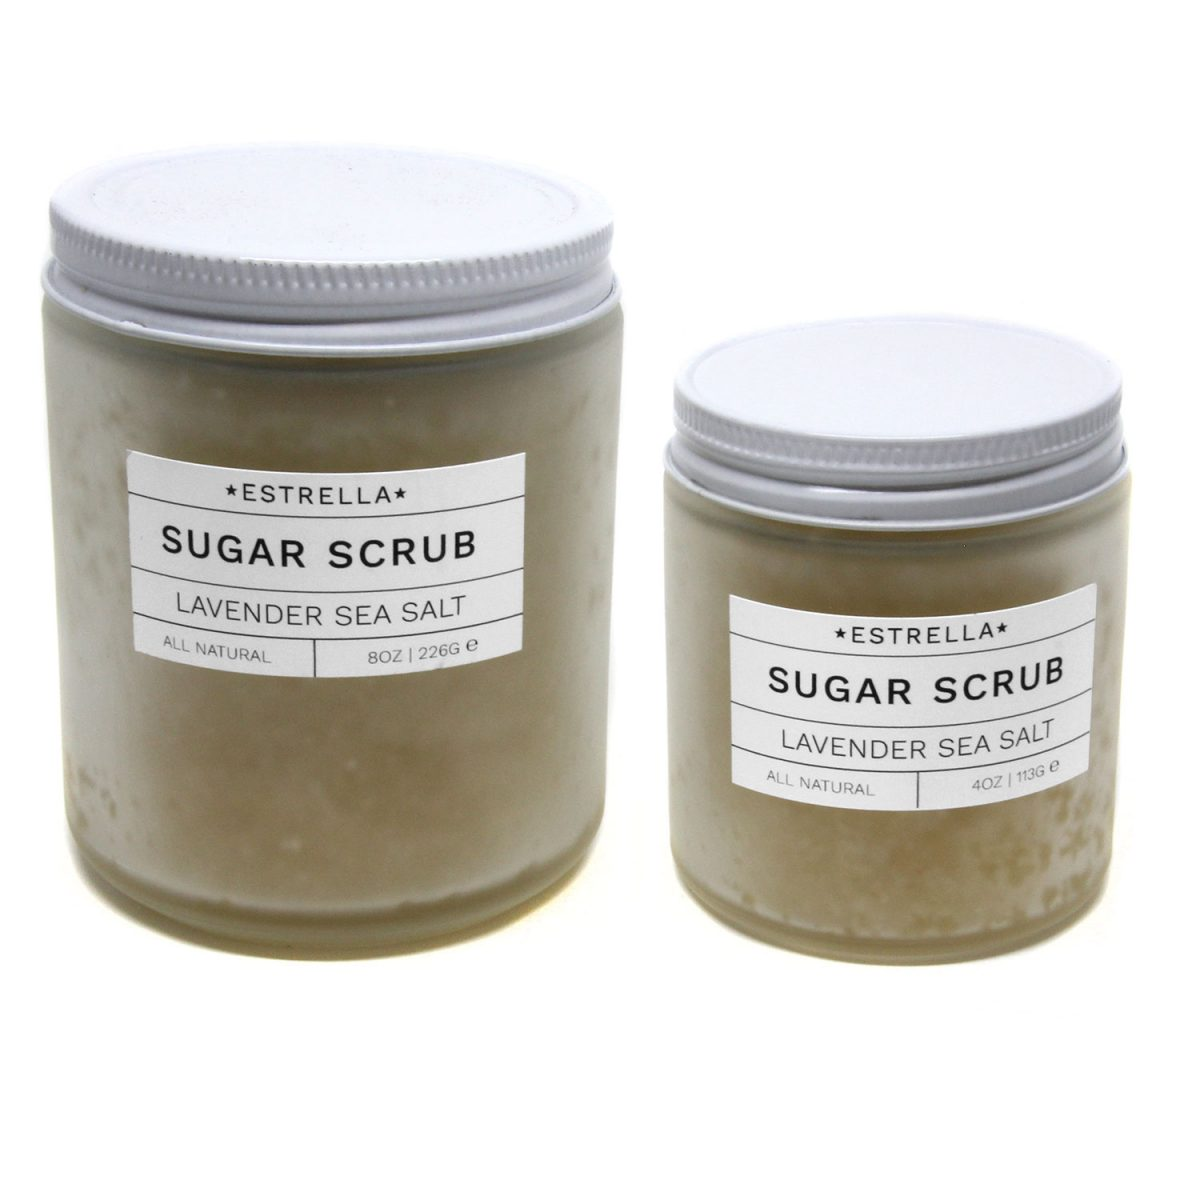 Sugar-Scrub-Lavender-Sea-Salt